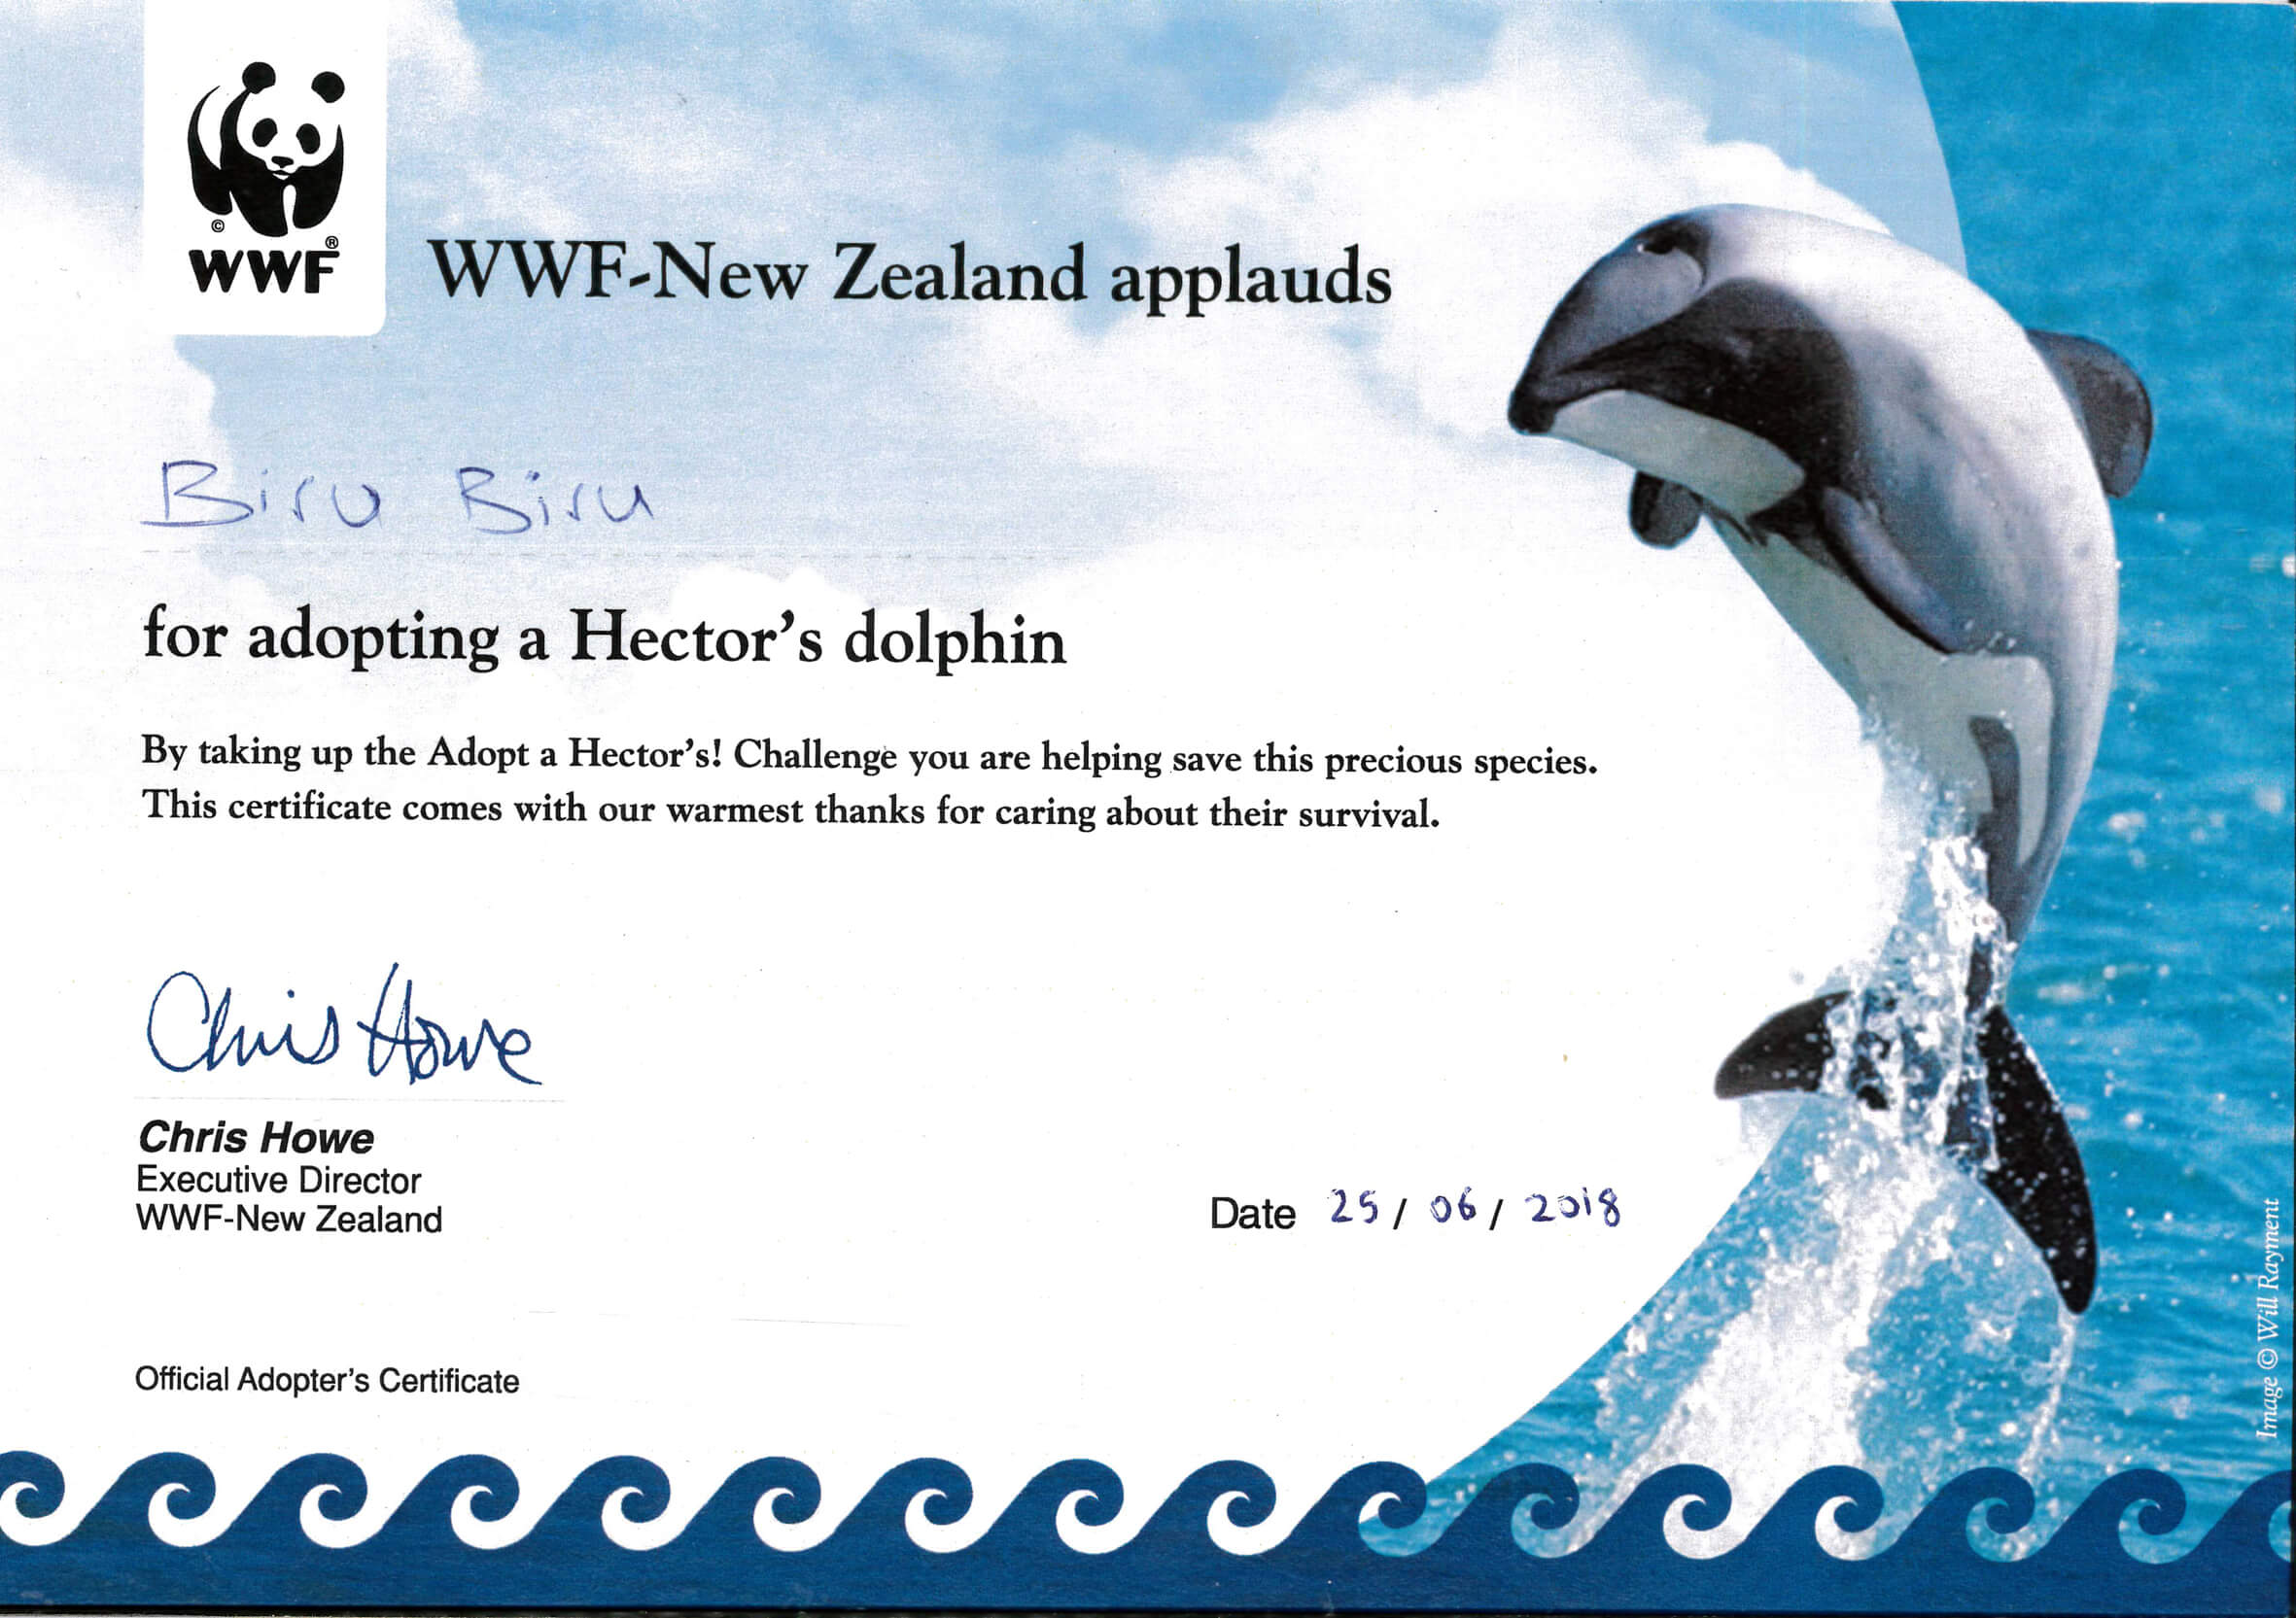 WWF BIRU BIRU Adoption Delfin